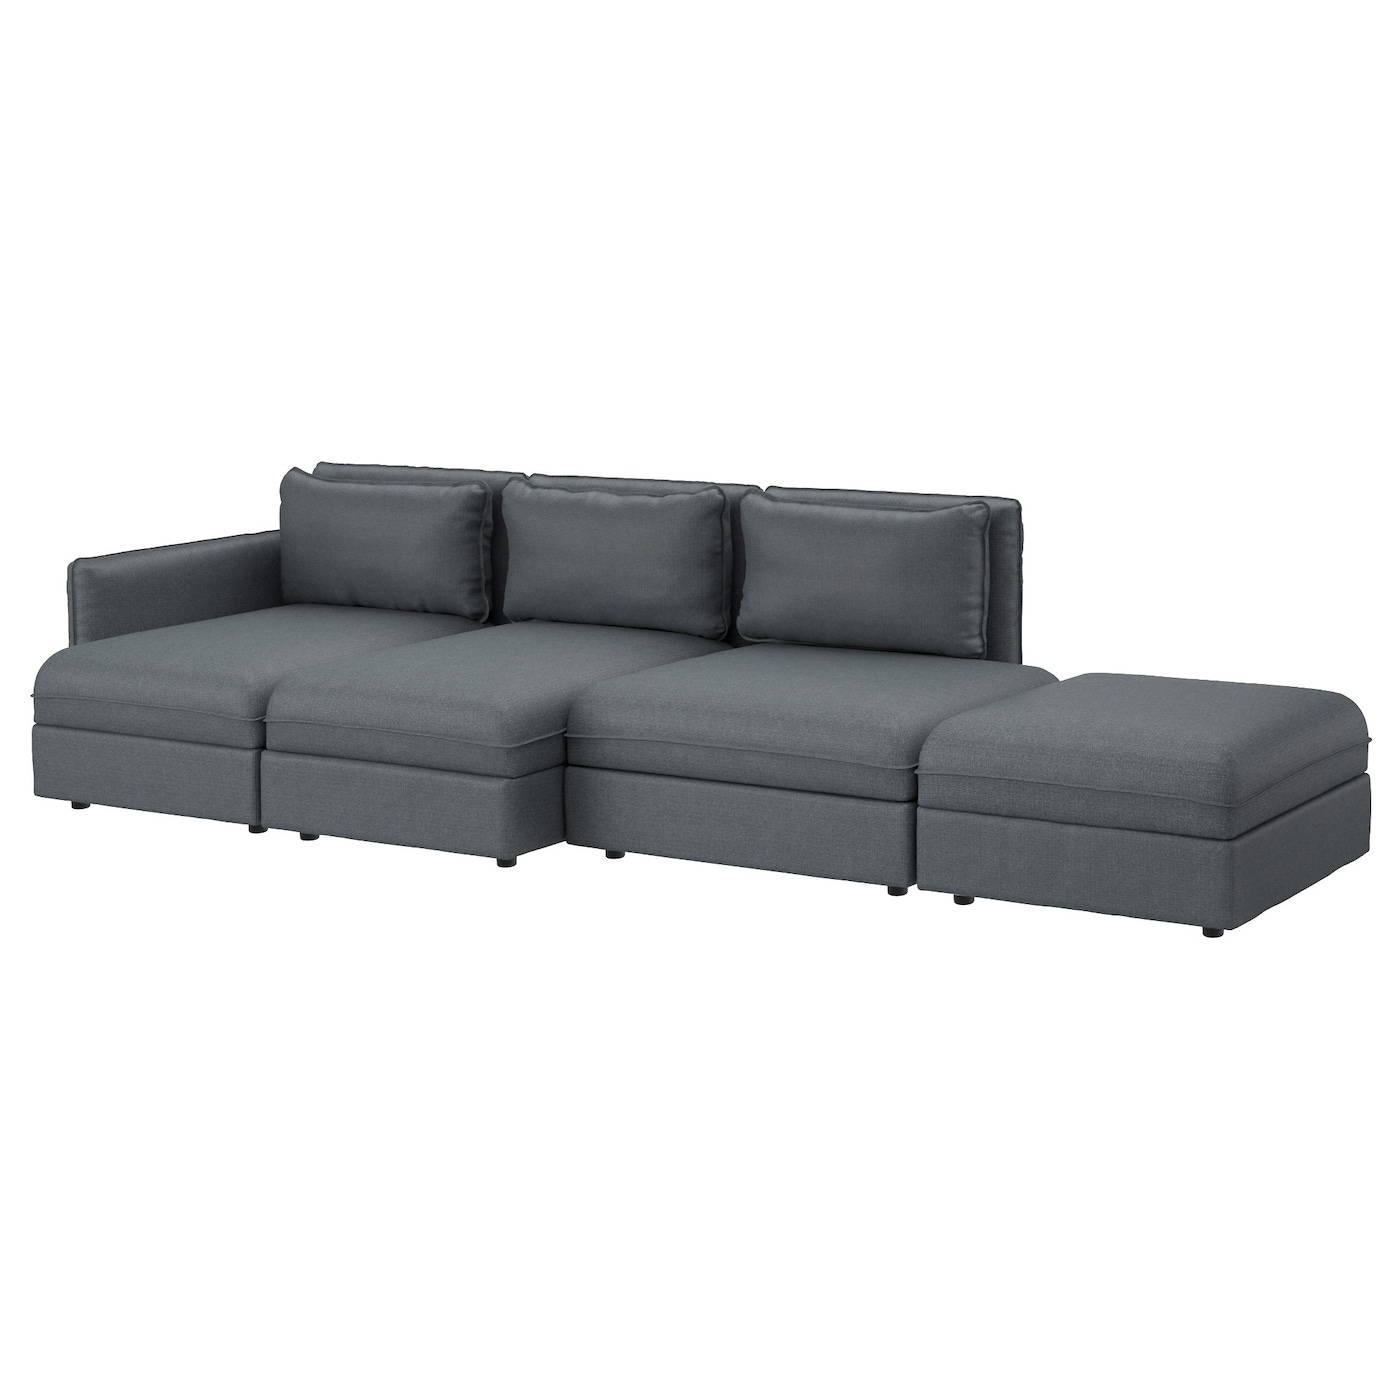 Vallentuna 4 seat sofa hillared dark grey ikea for Ikea couch planer